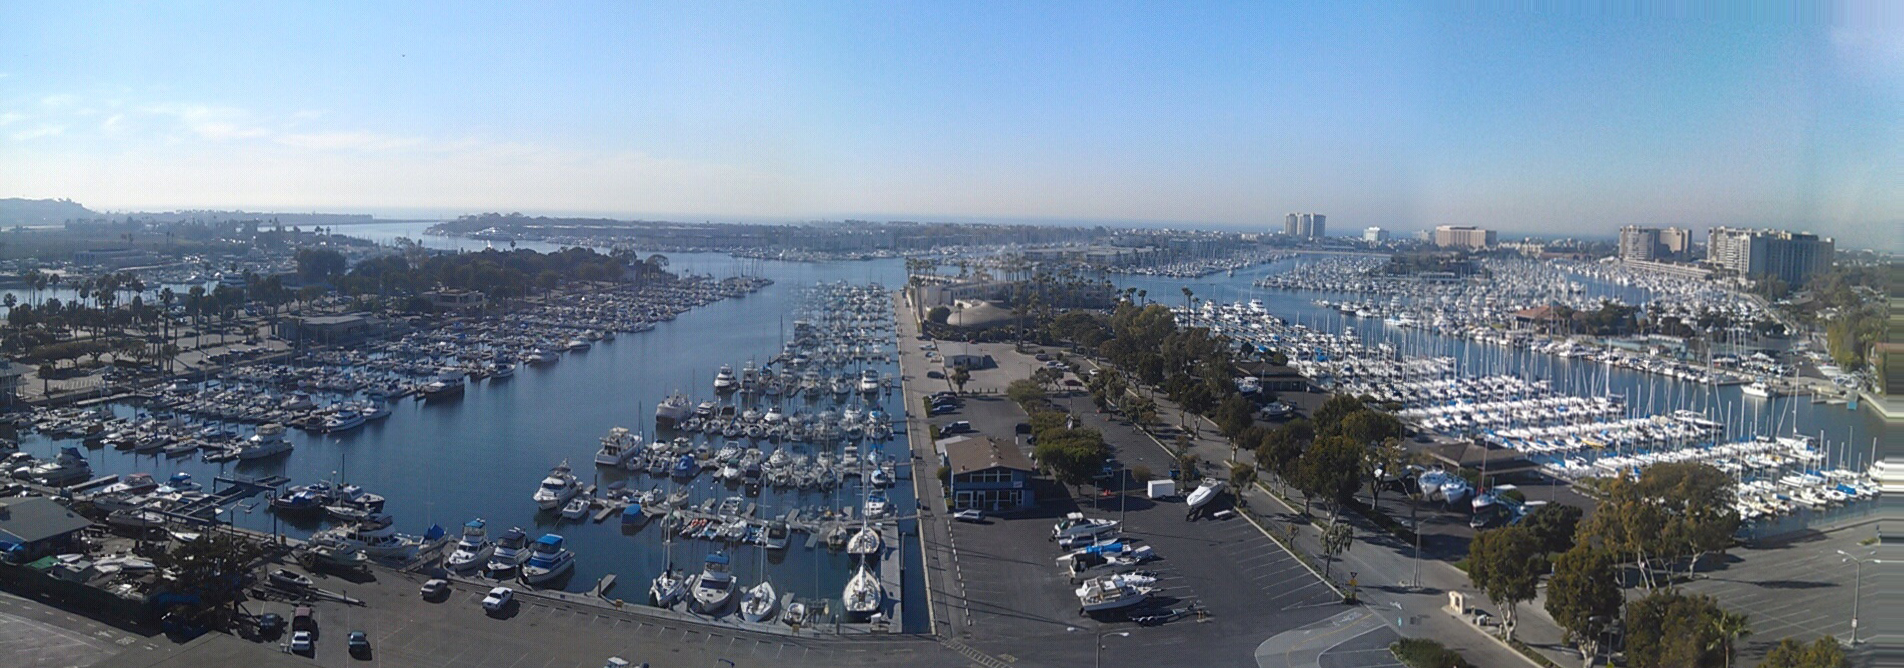 Marina del Rey Real Estate and boat harbor